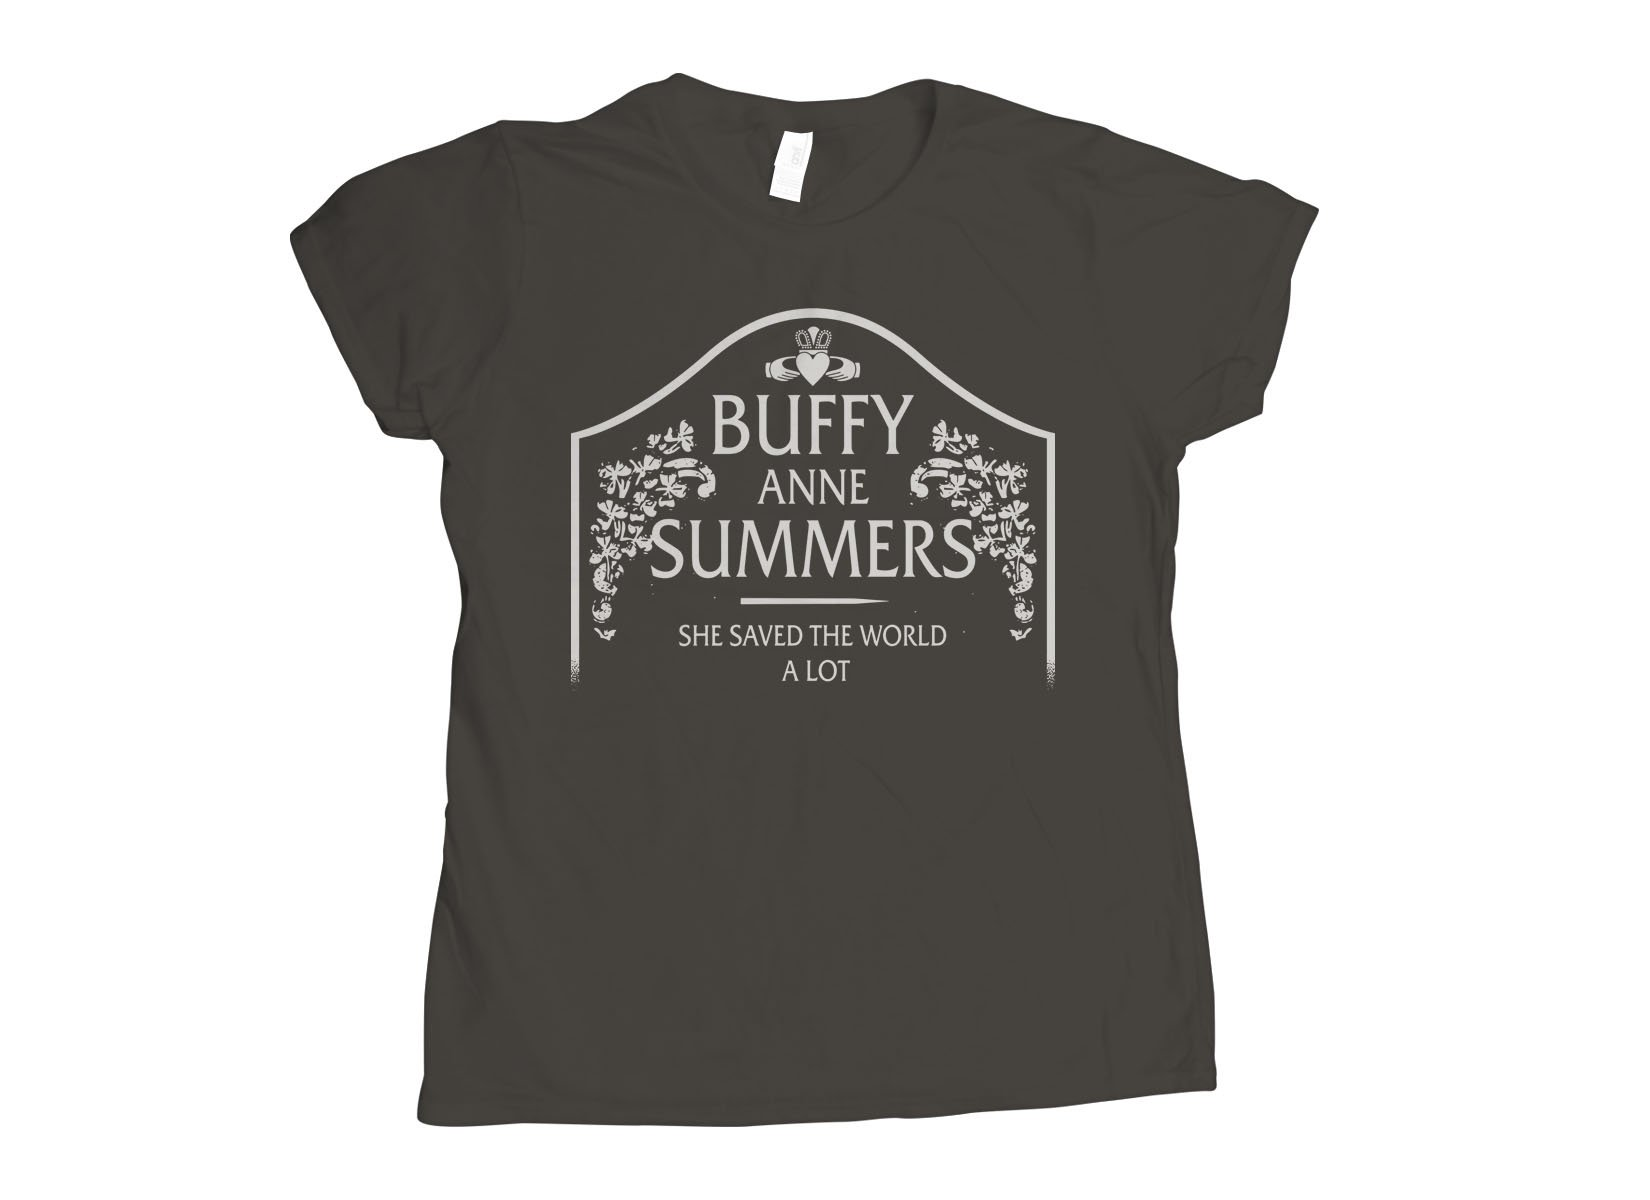 Buffy Anne Summers on Womens T-Shirt